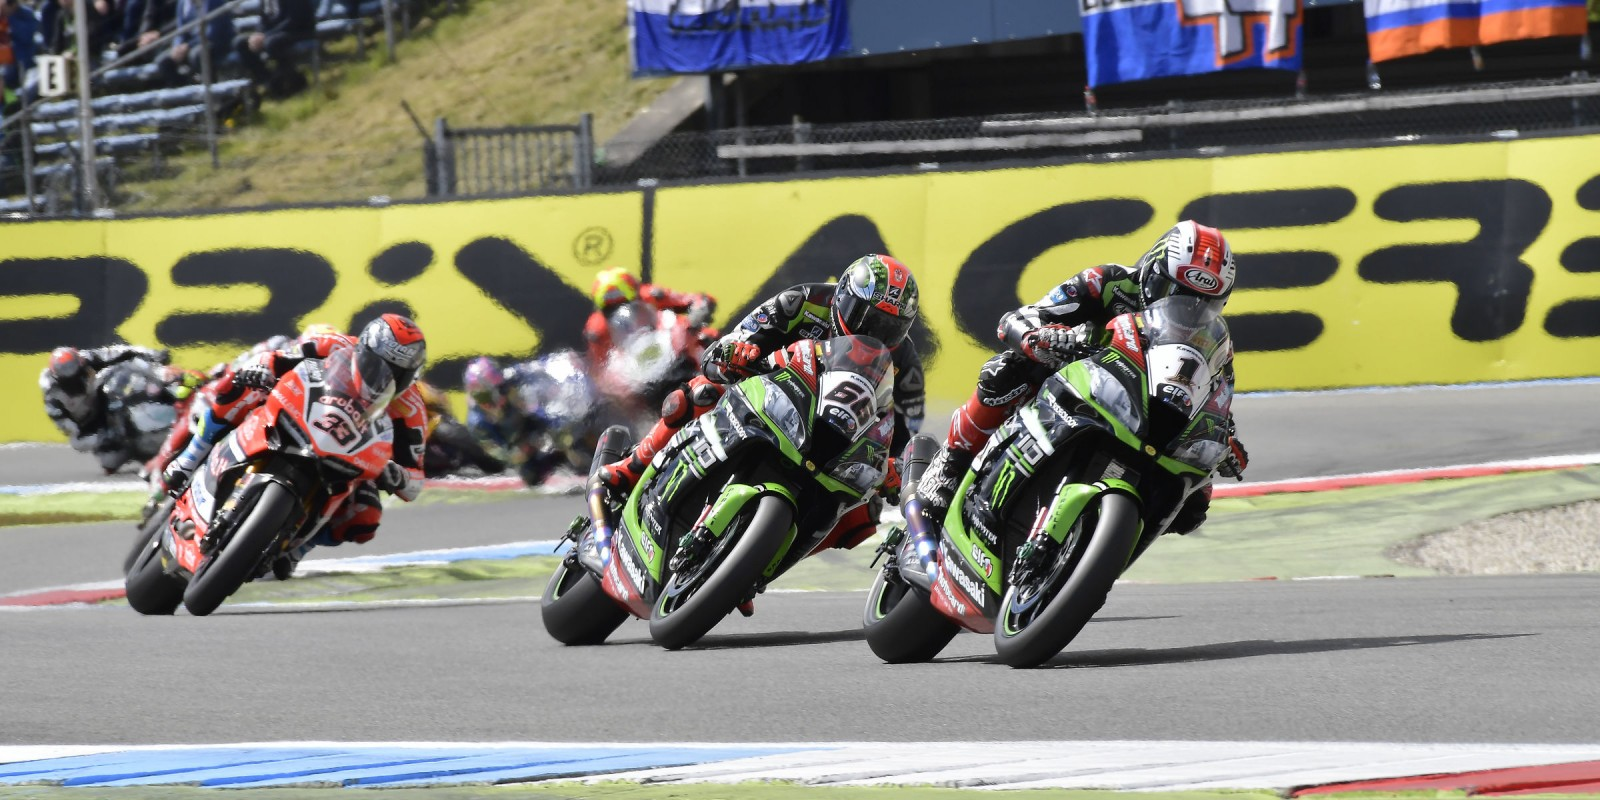 Tom Sykes and Jonathan Rea at the 2017 World Superbike Acerbis Dutch Round